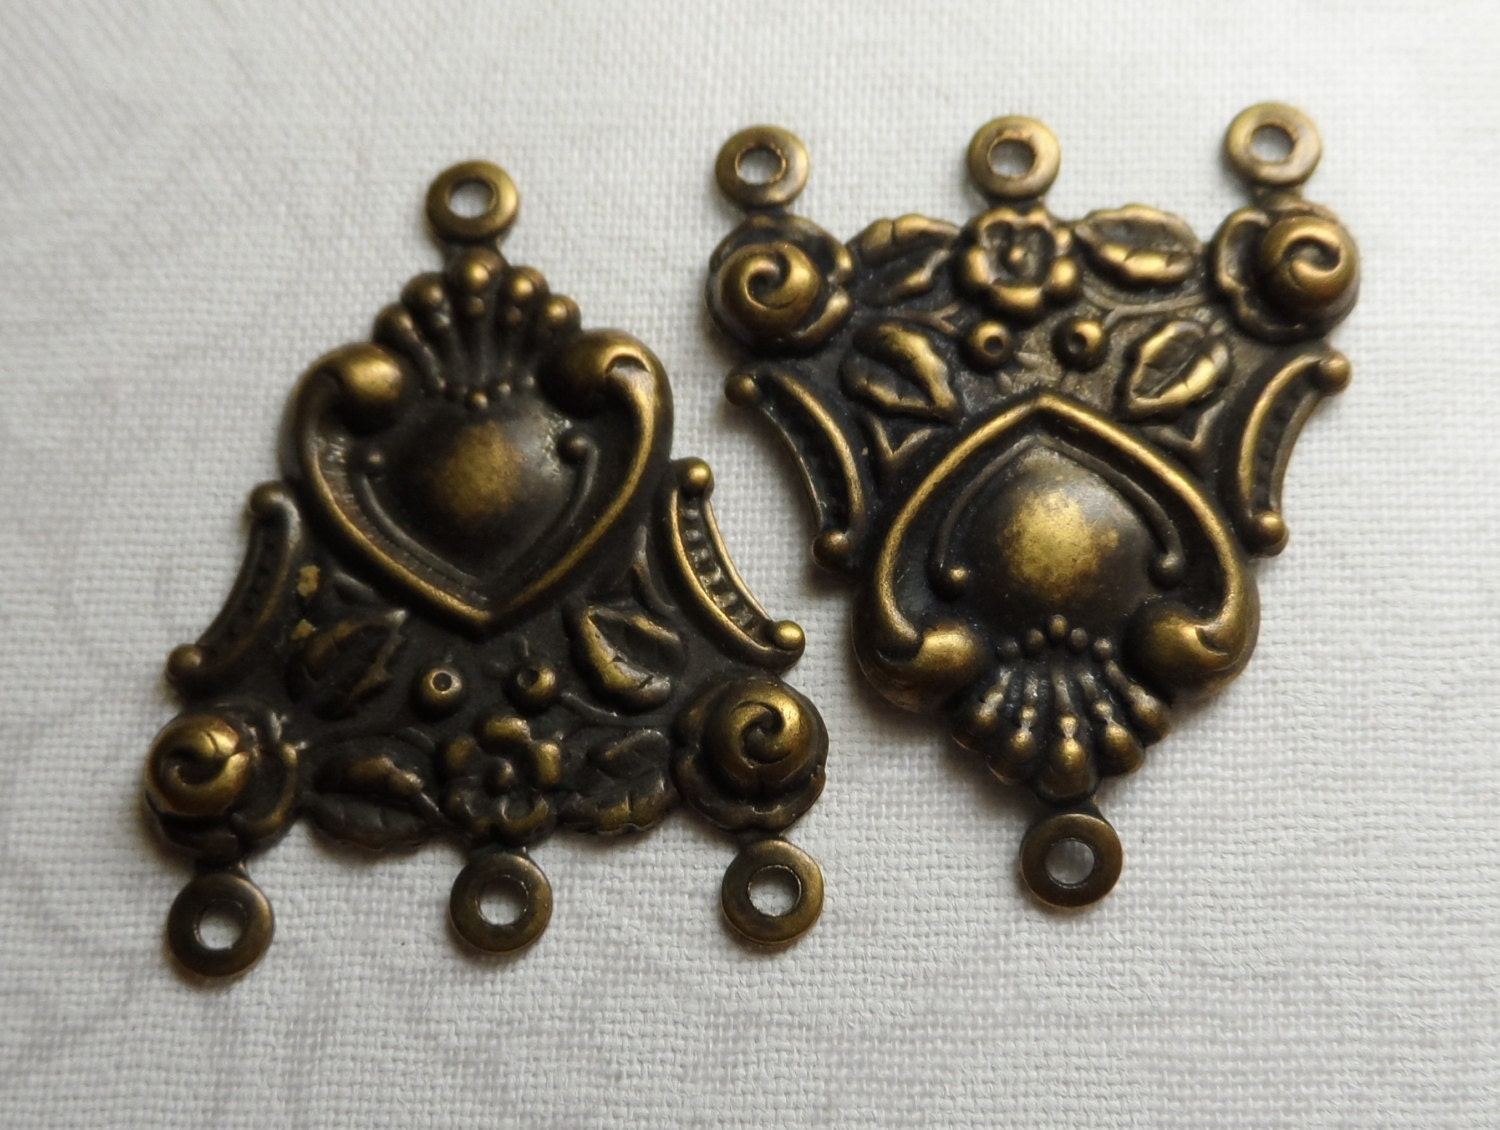 Large fancy vintage gold or silver plate brass connectors